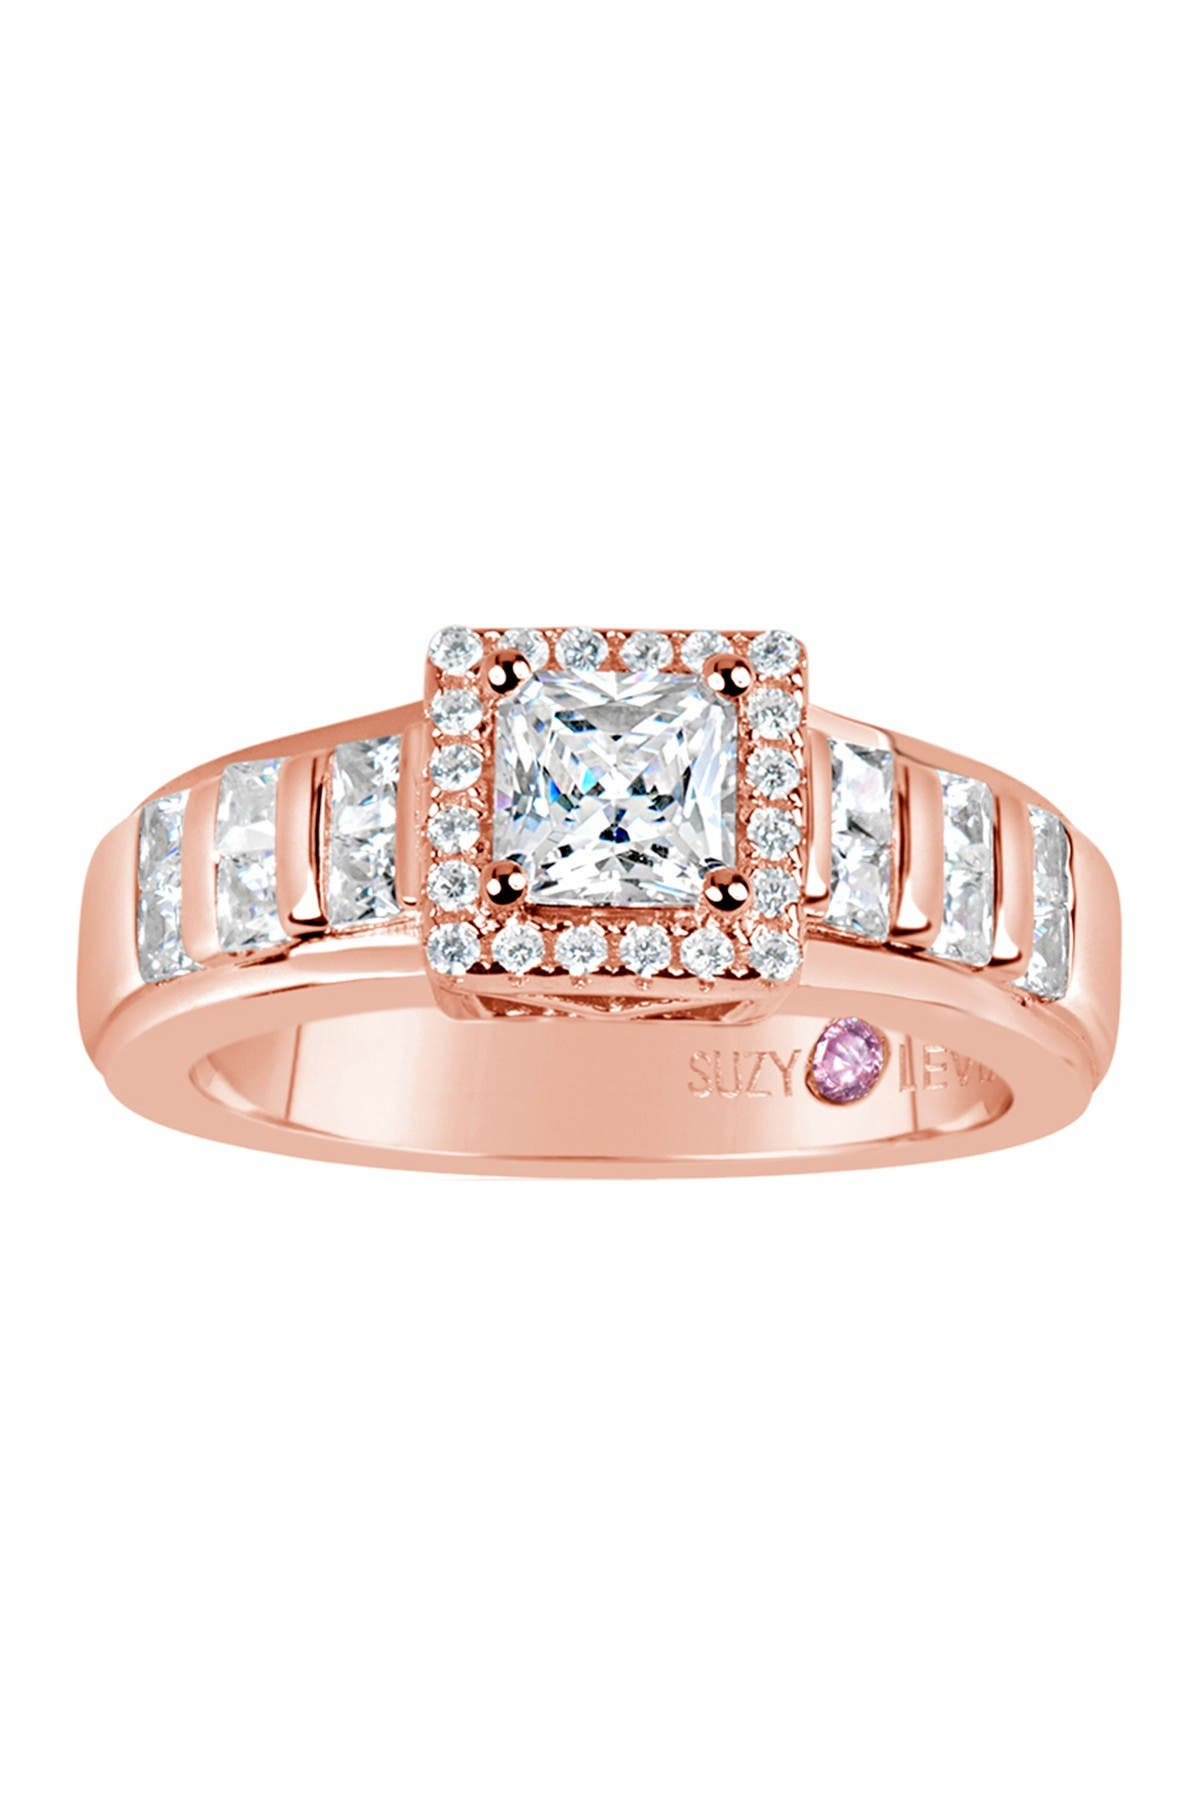 Image of Suzy Levian Rose Plated Sterling Silver Asscher Cut CZ Engagement Ring